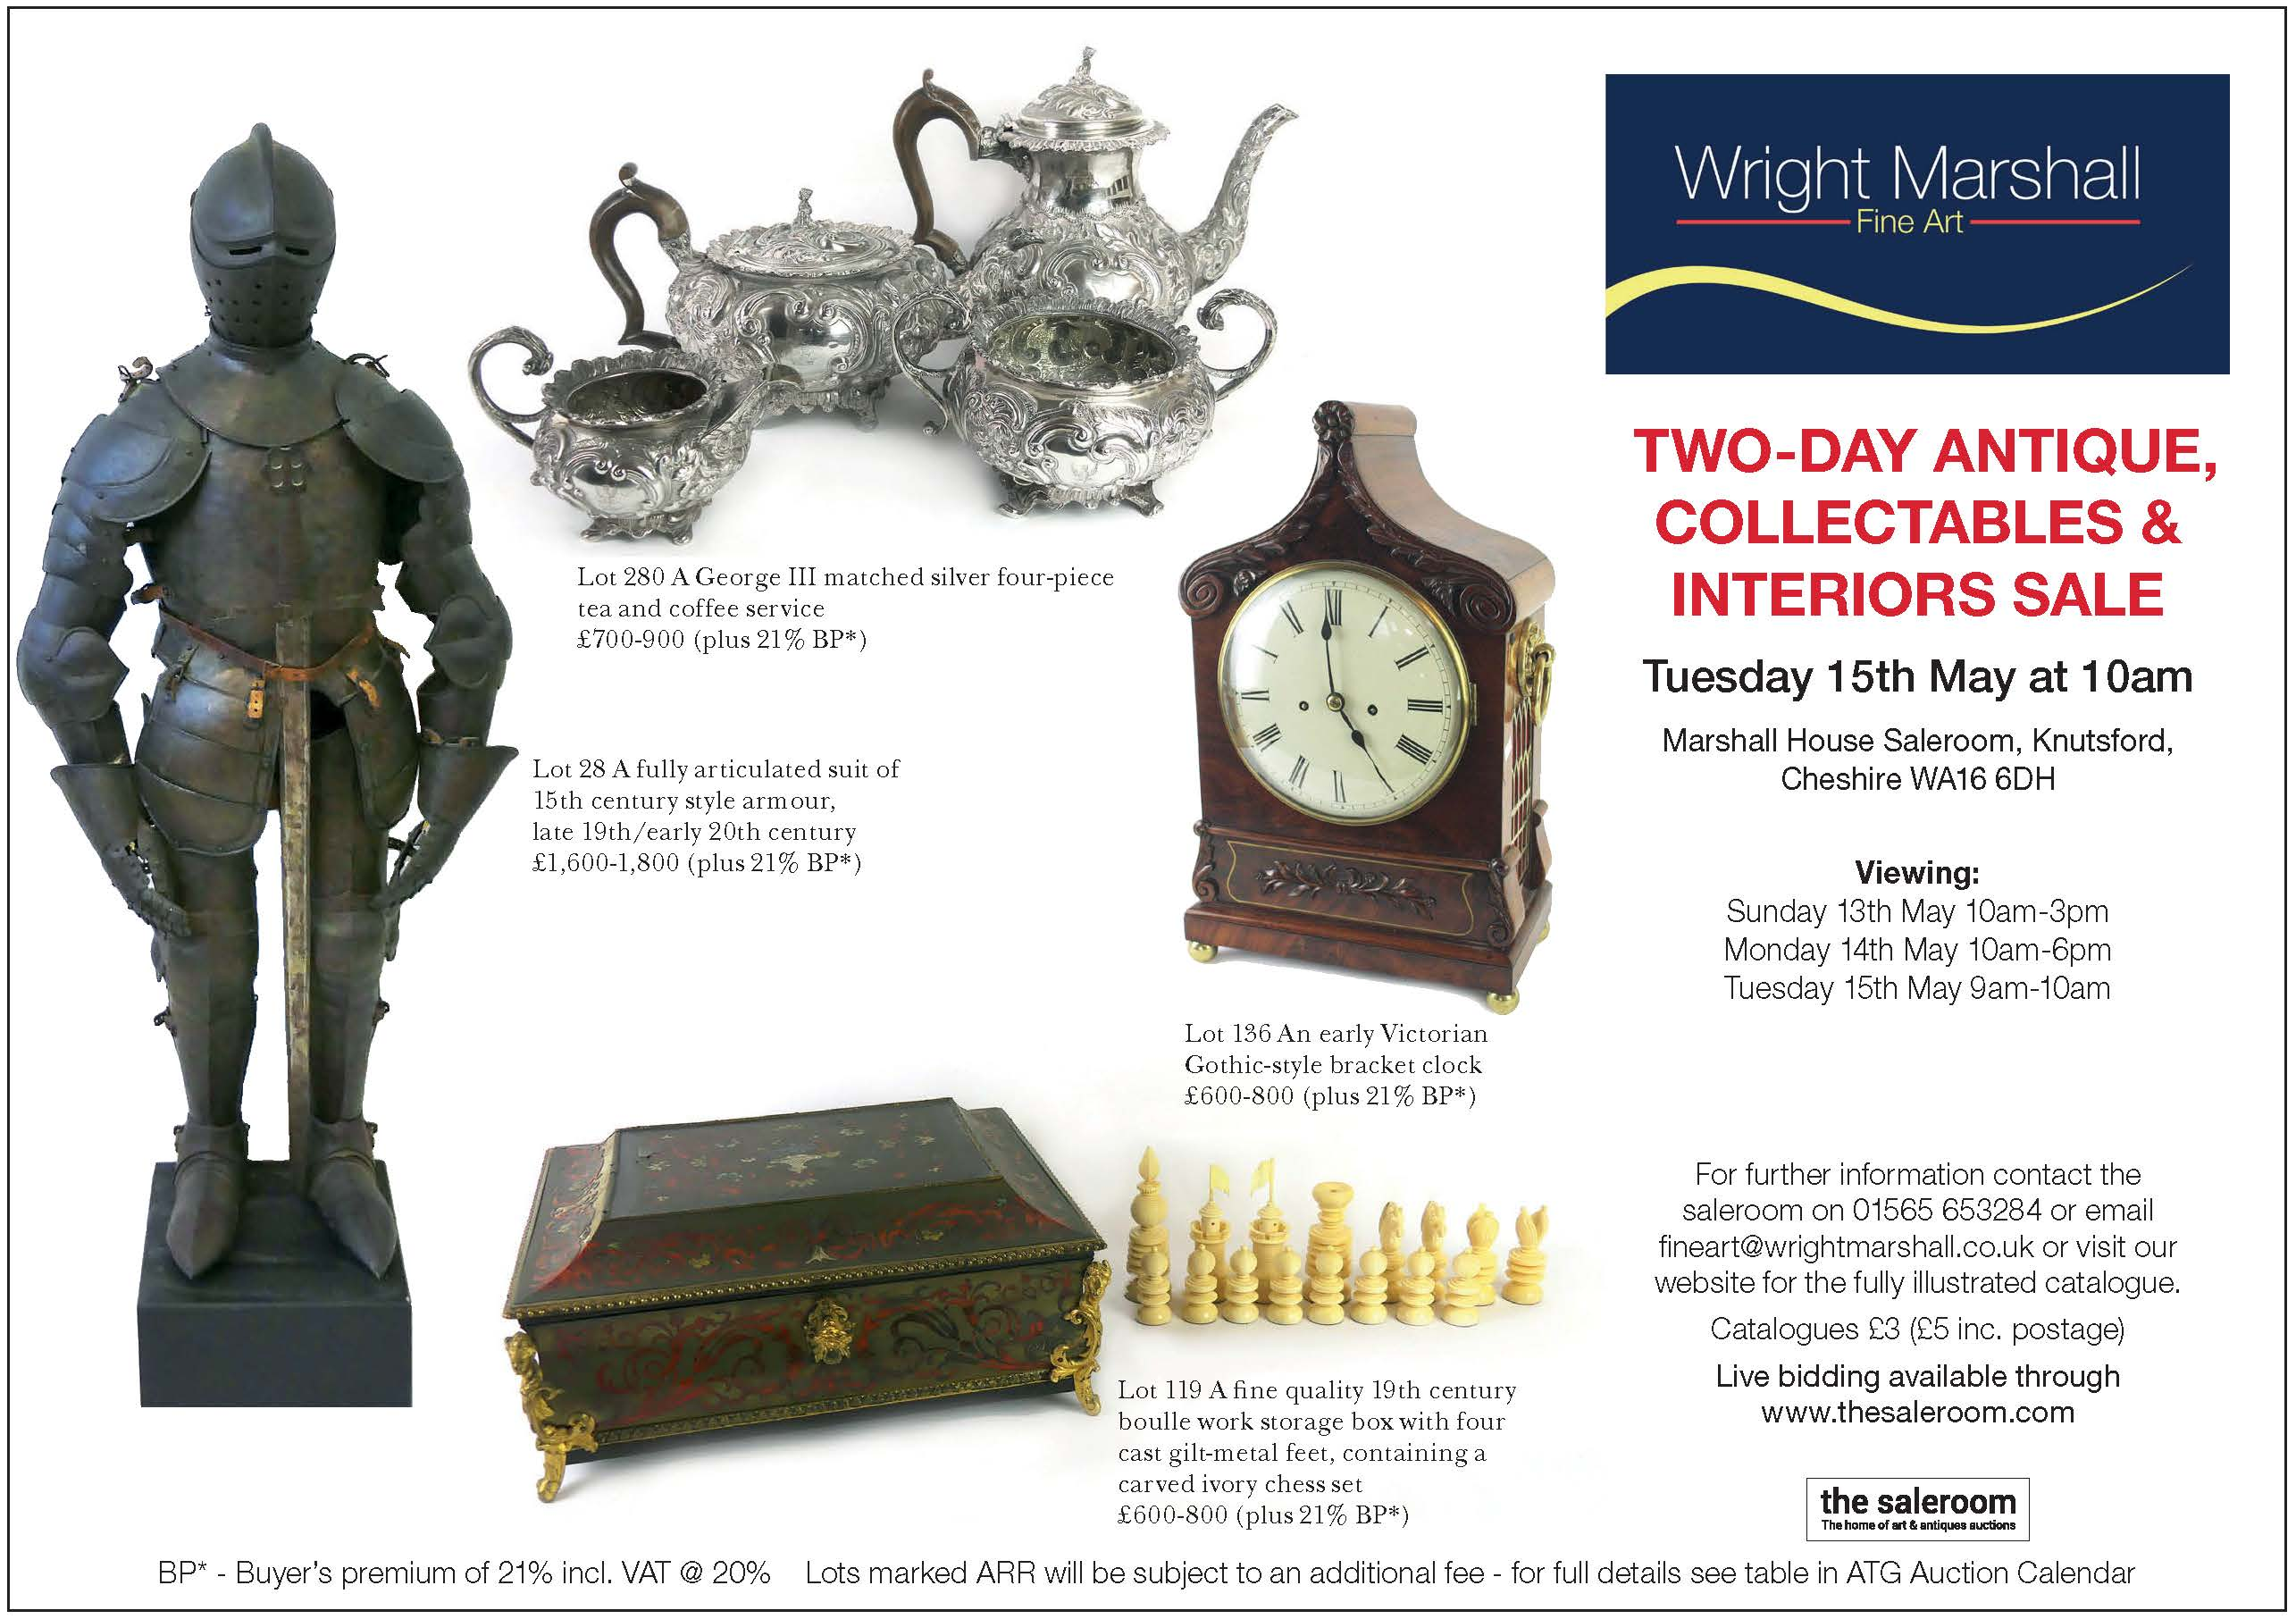 Wright Marshall- Antique, Collectables & Interiors Sale.jpg